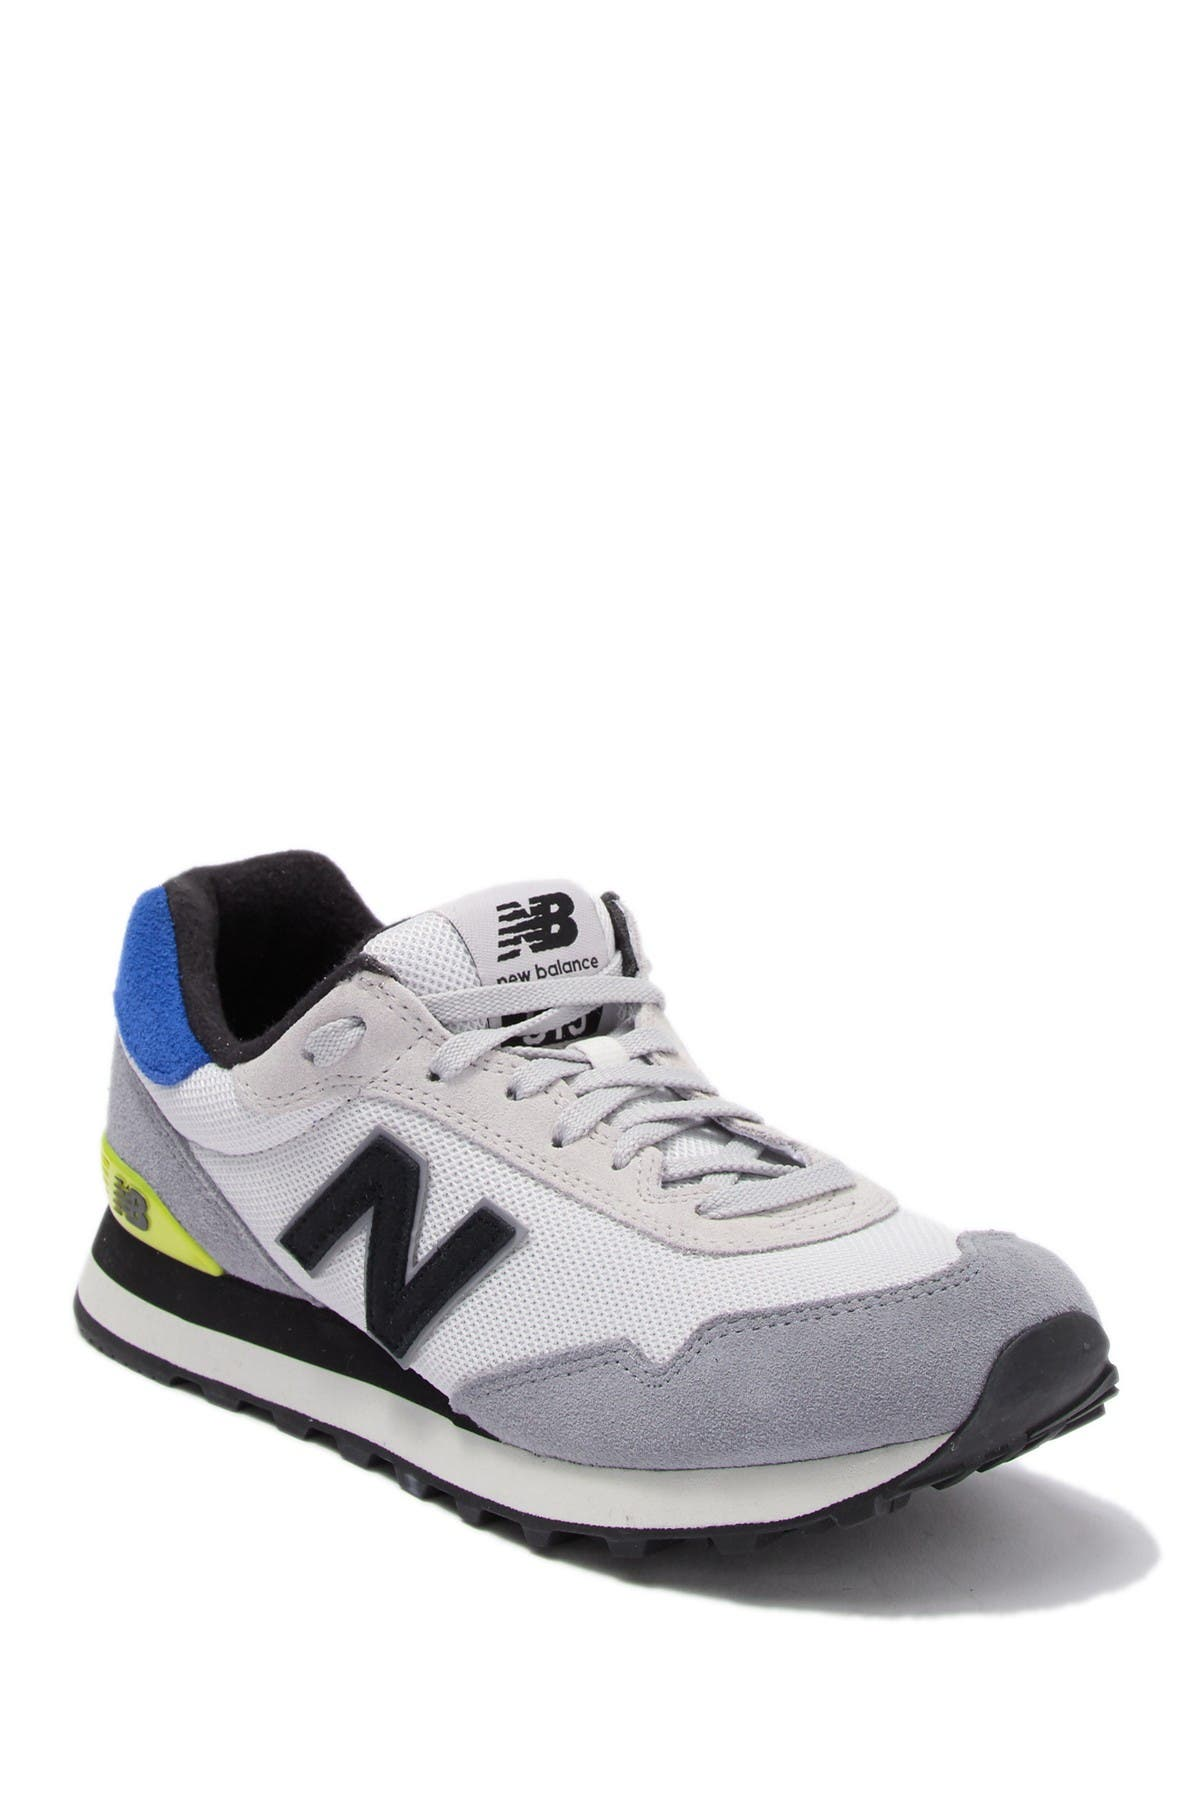 Image of New Balance 515 Classic Sneaker